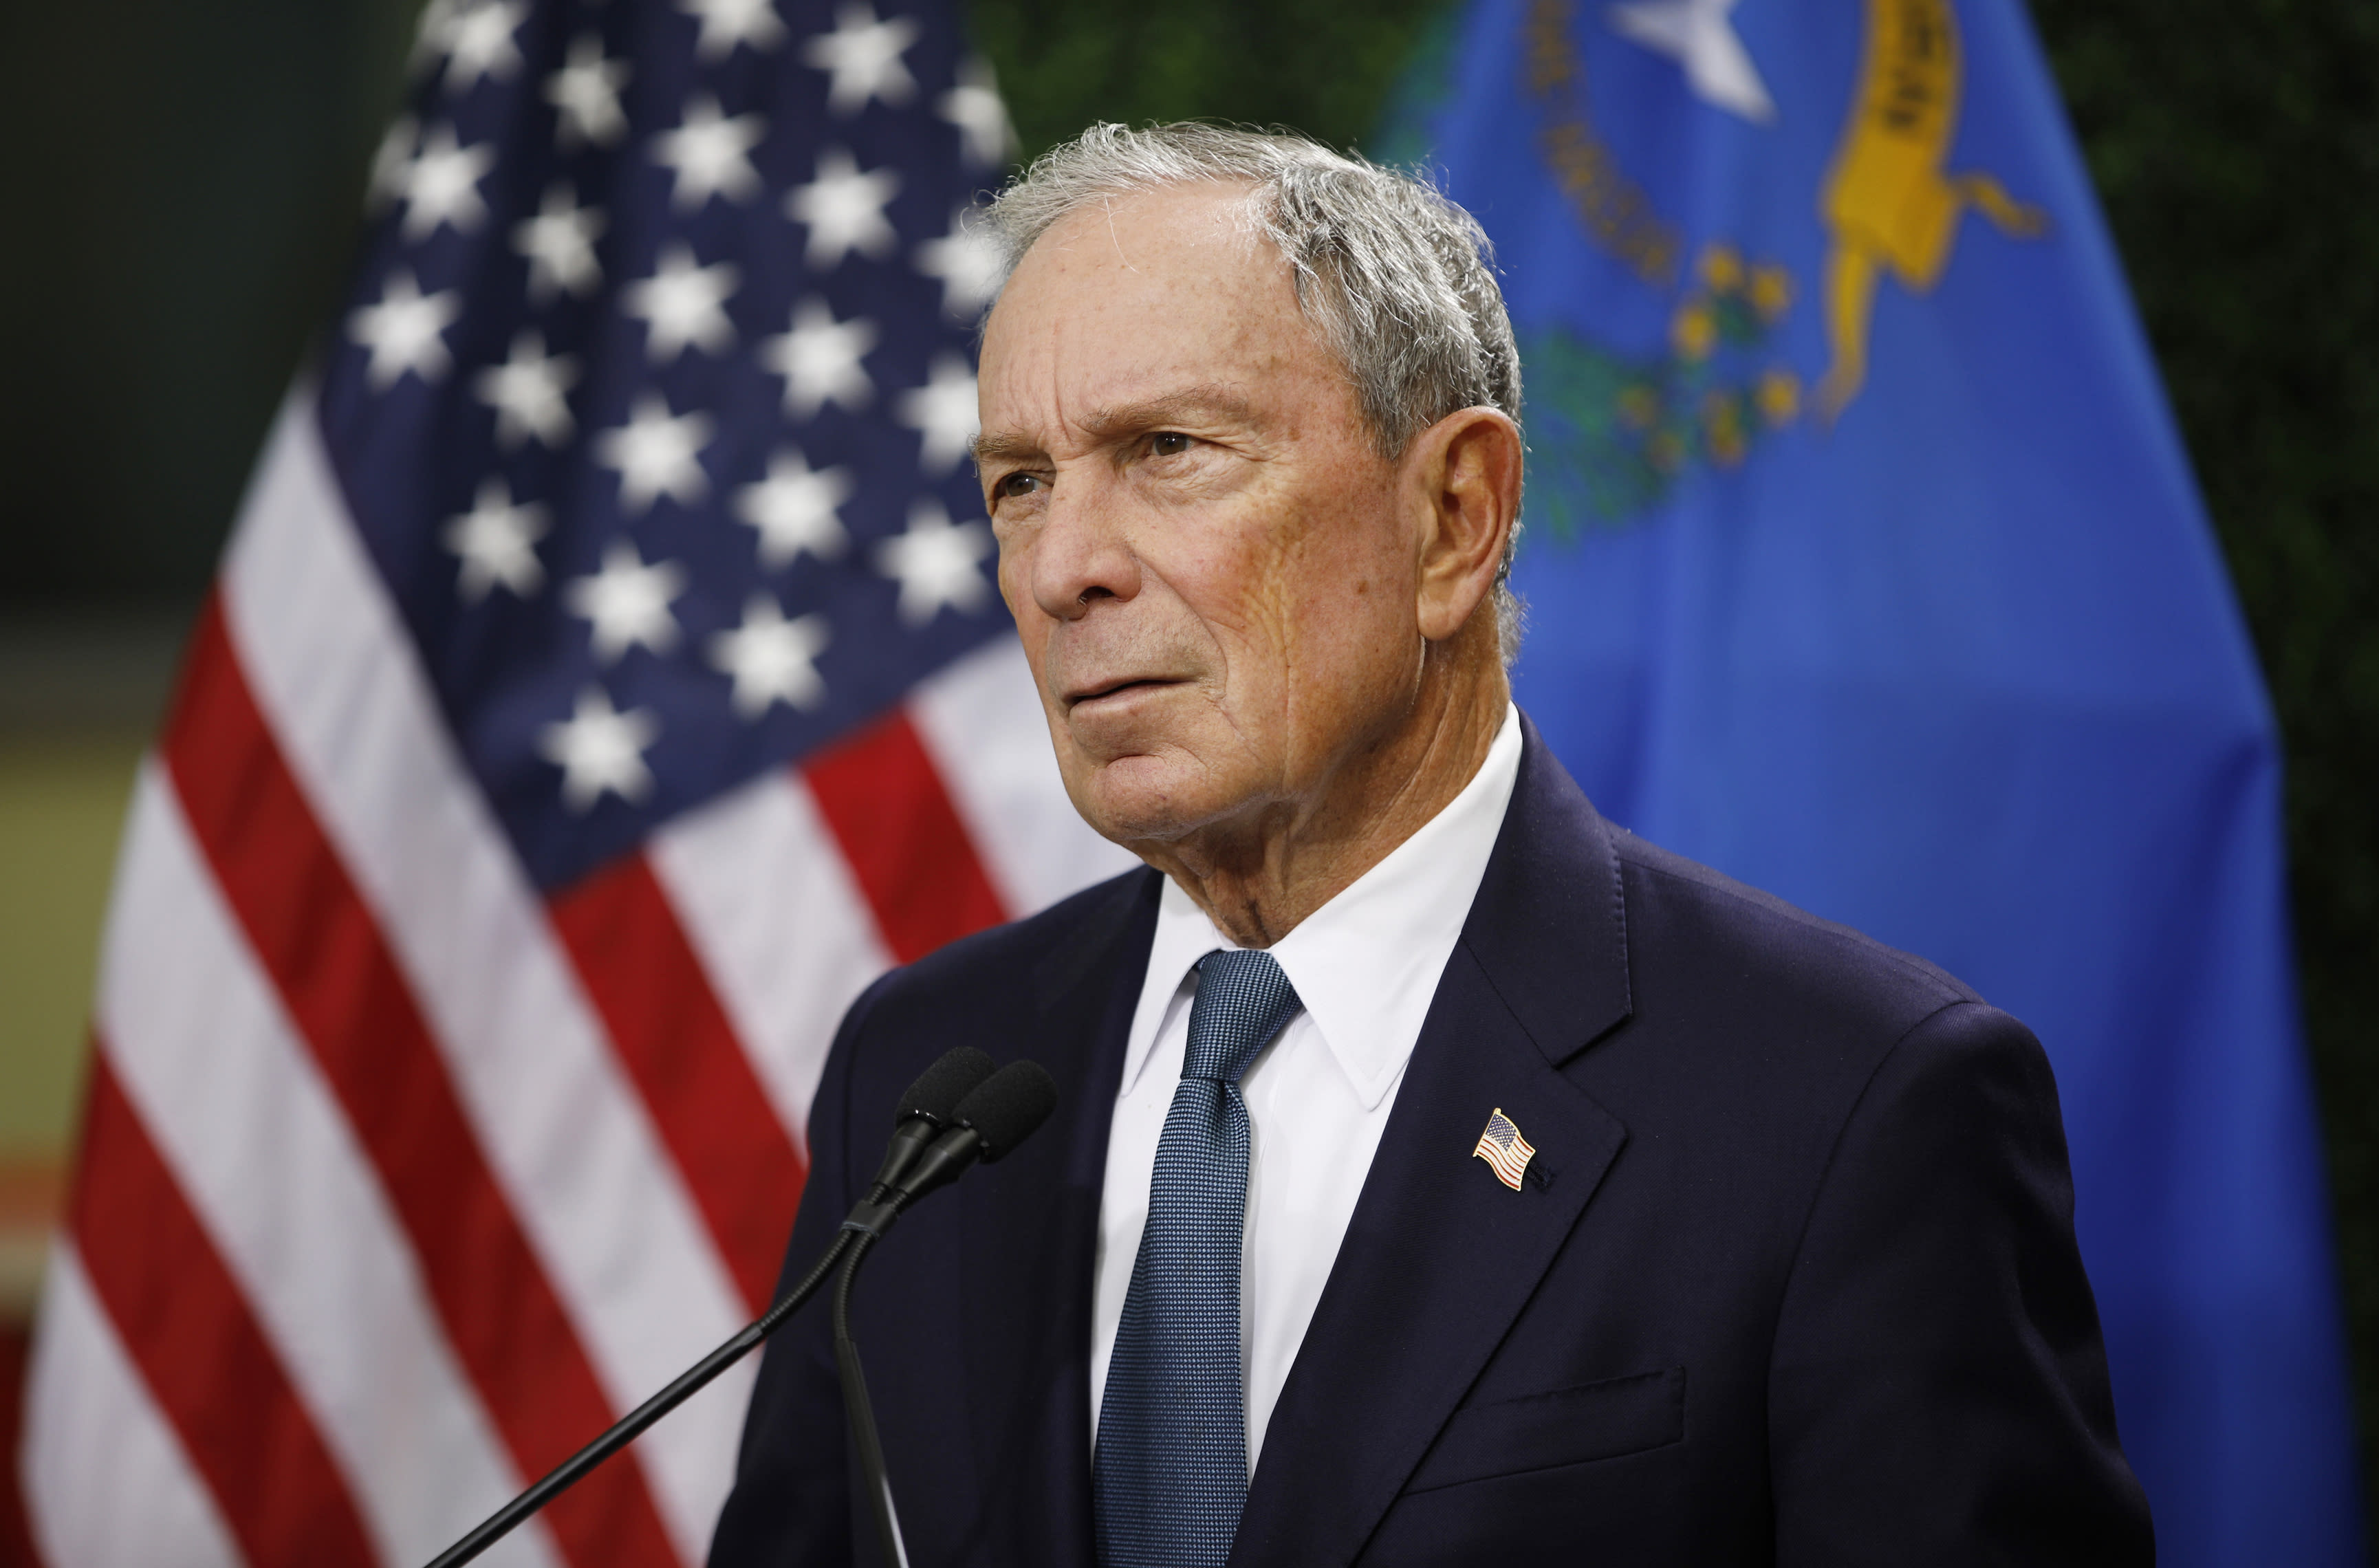 NY Times: Bloomberg admits he was wrong, apologizes for 'stop and frisk